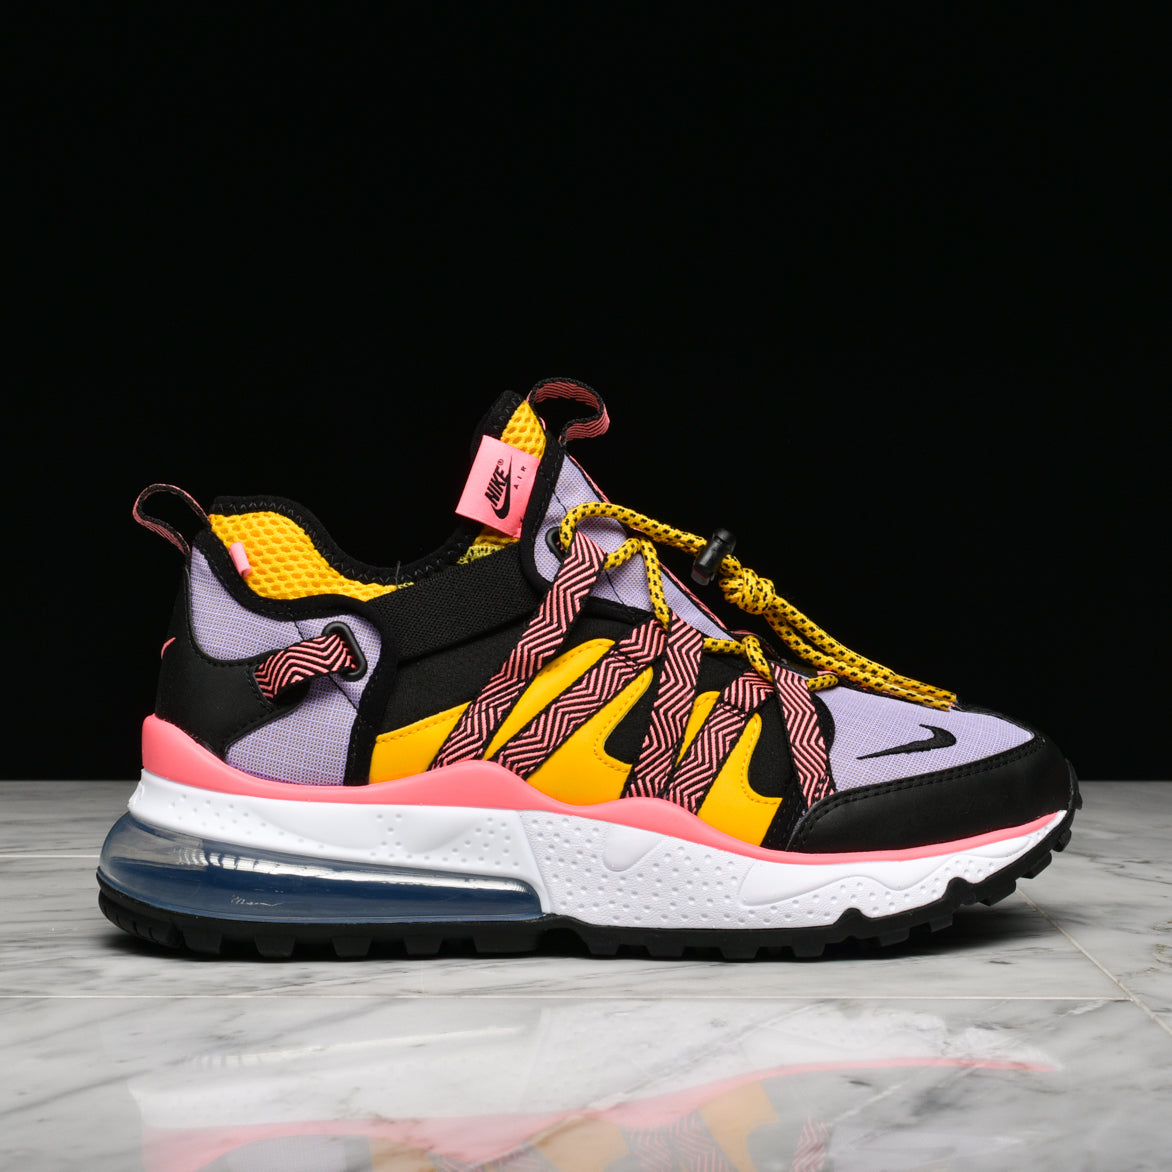 AIR MAX 270 BOWFIN - BLACK / ATOMIC VIOLET